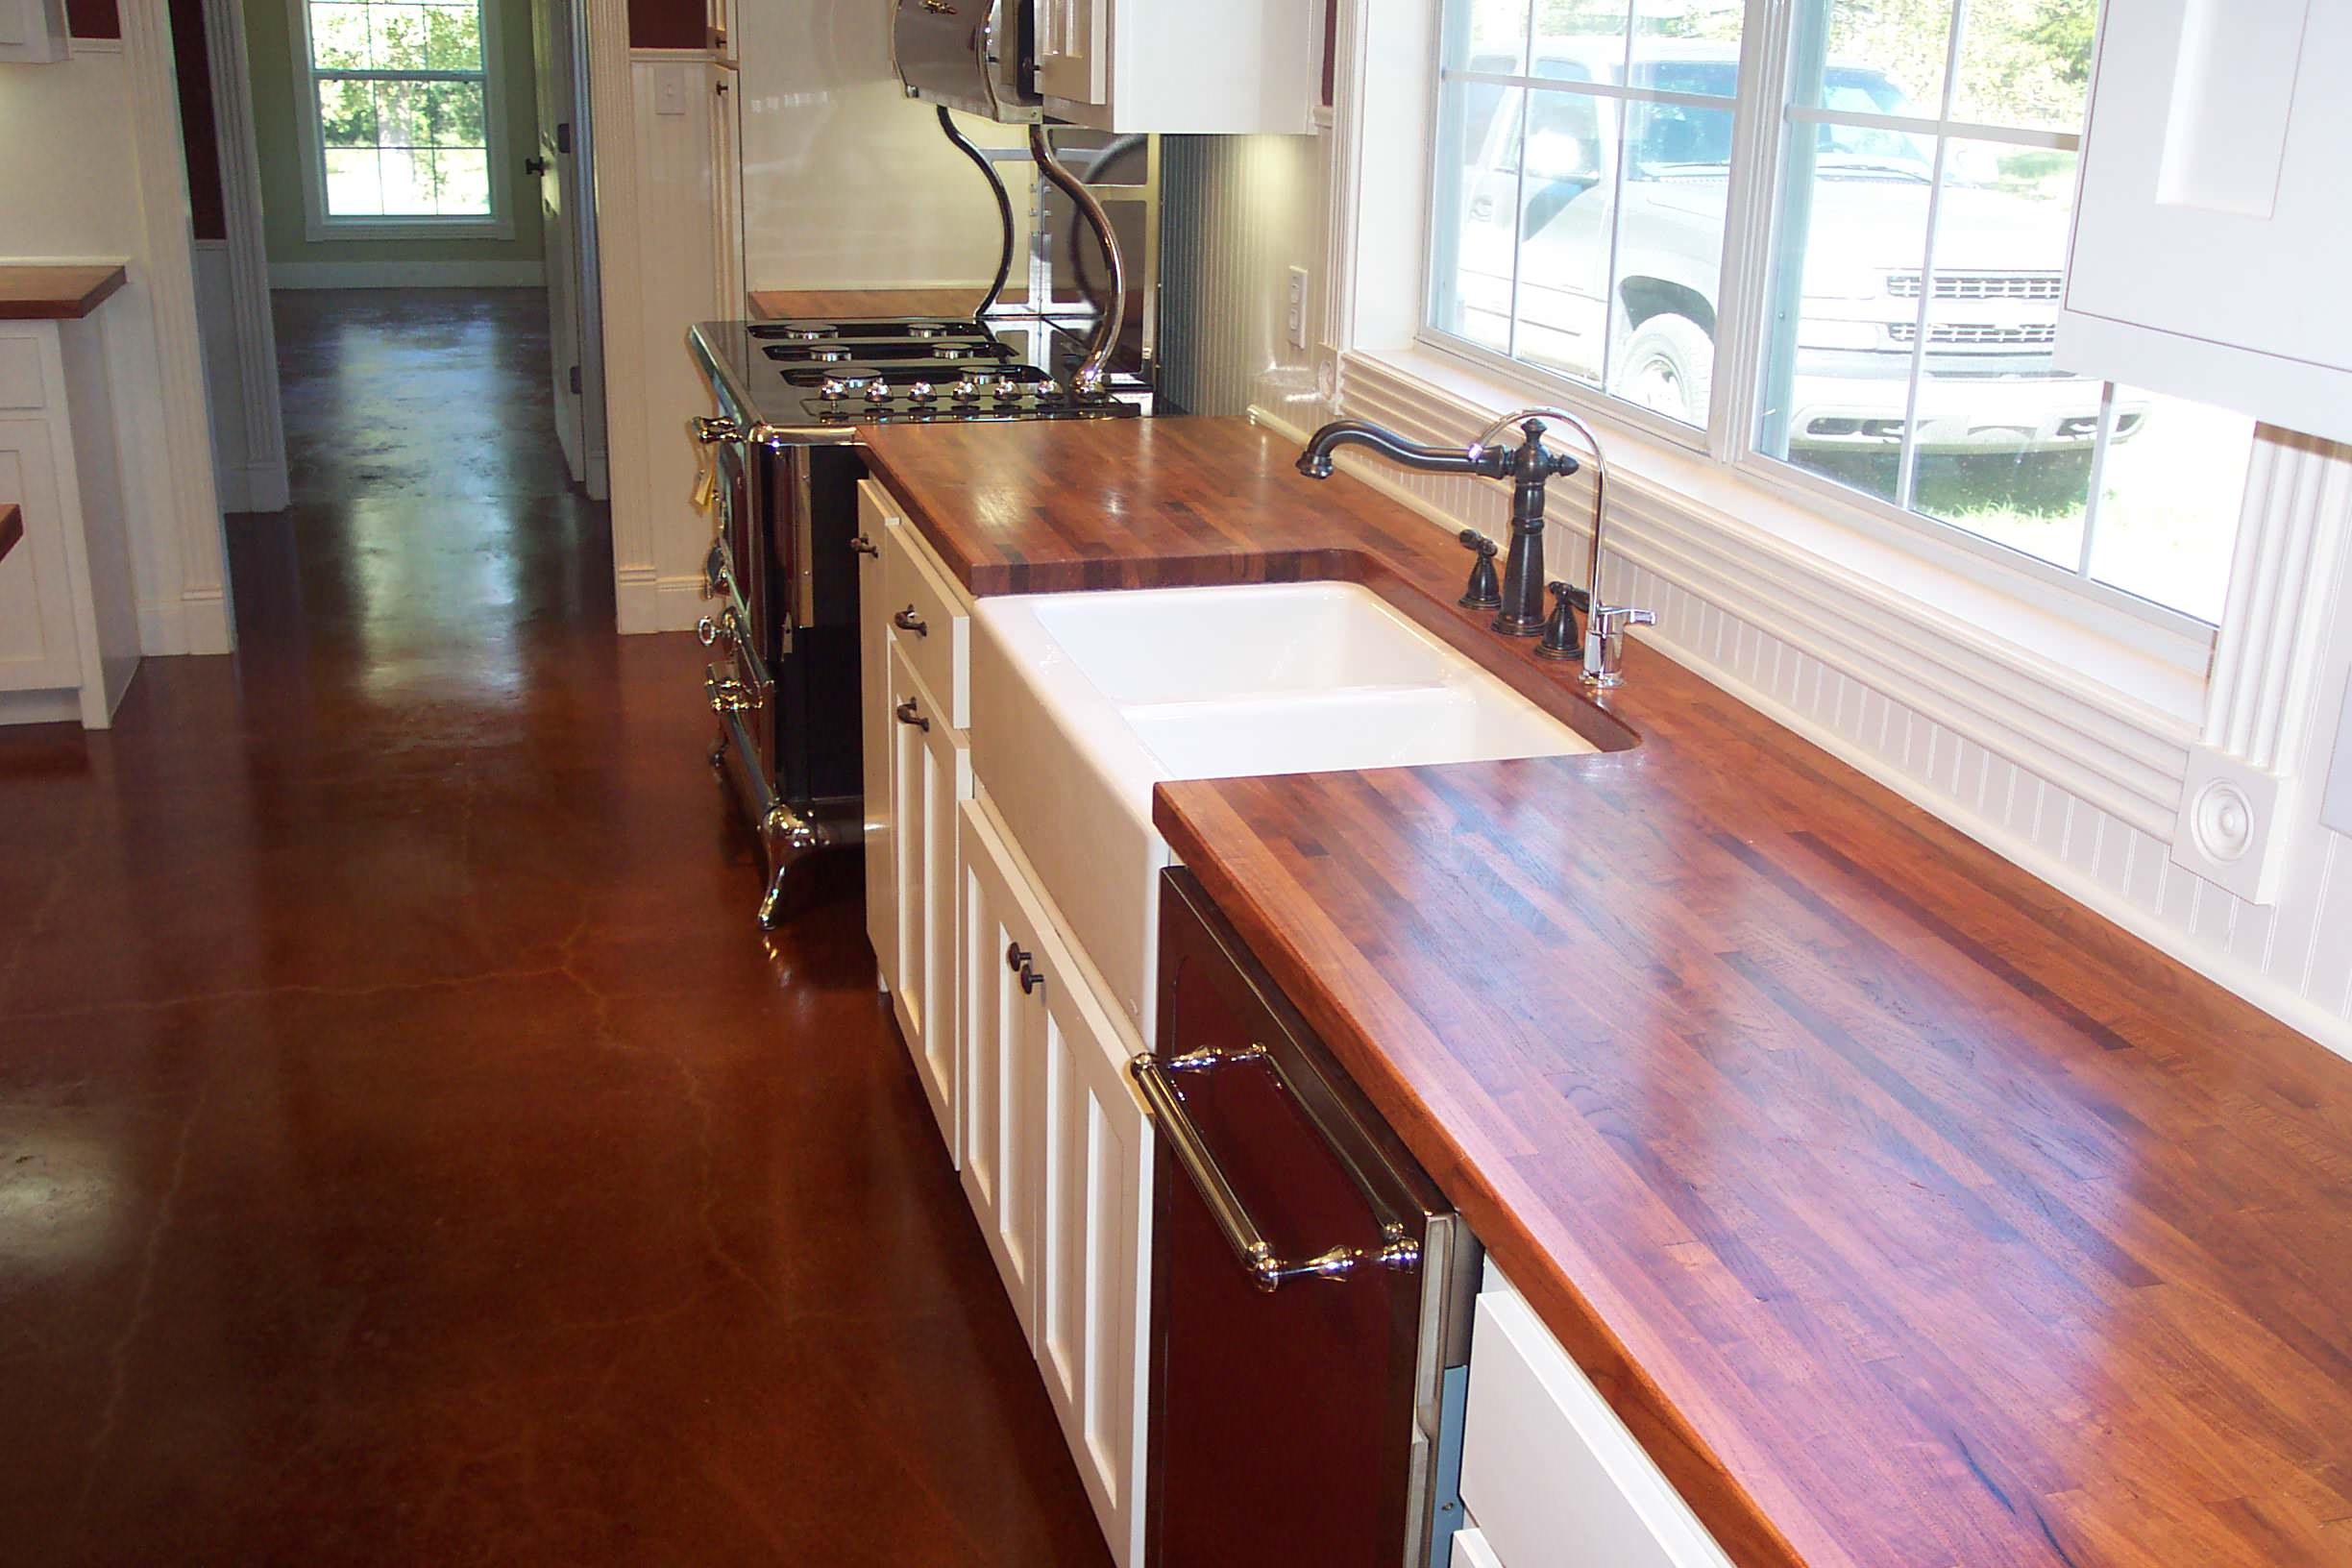 Mesquite Edge grain wood counter tops